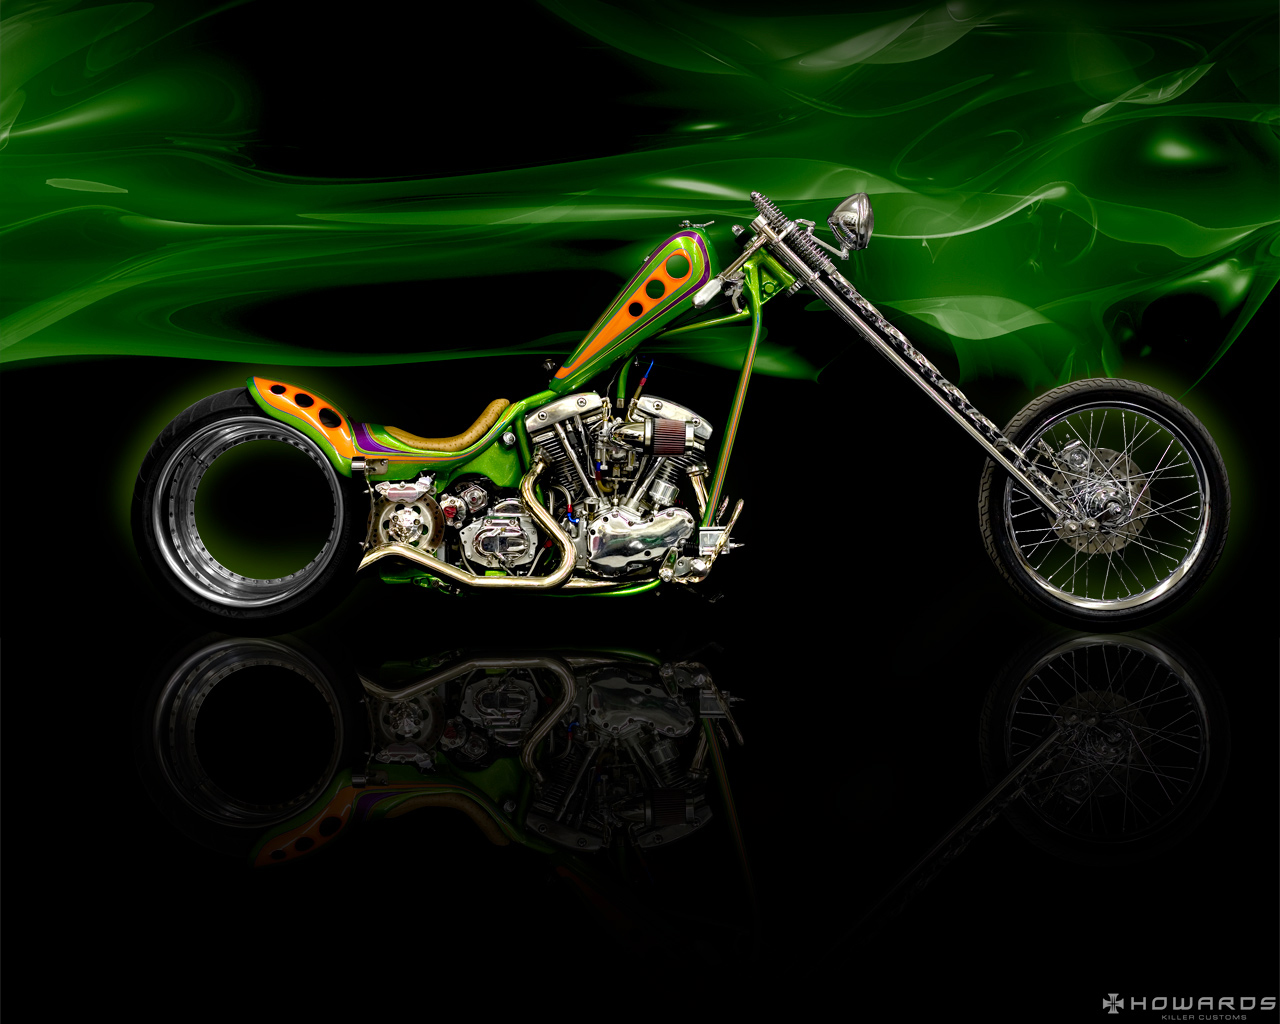 Awesome Bike Image Sports Wallpaper Bikes Wallpapers Heavy